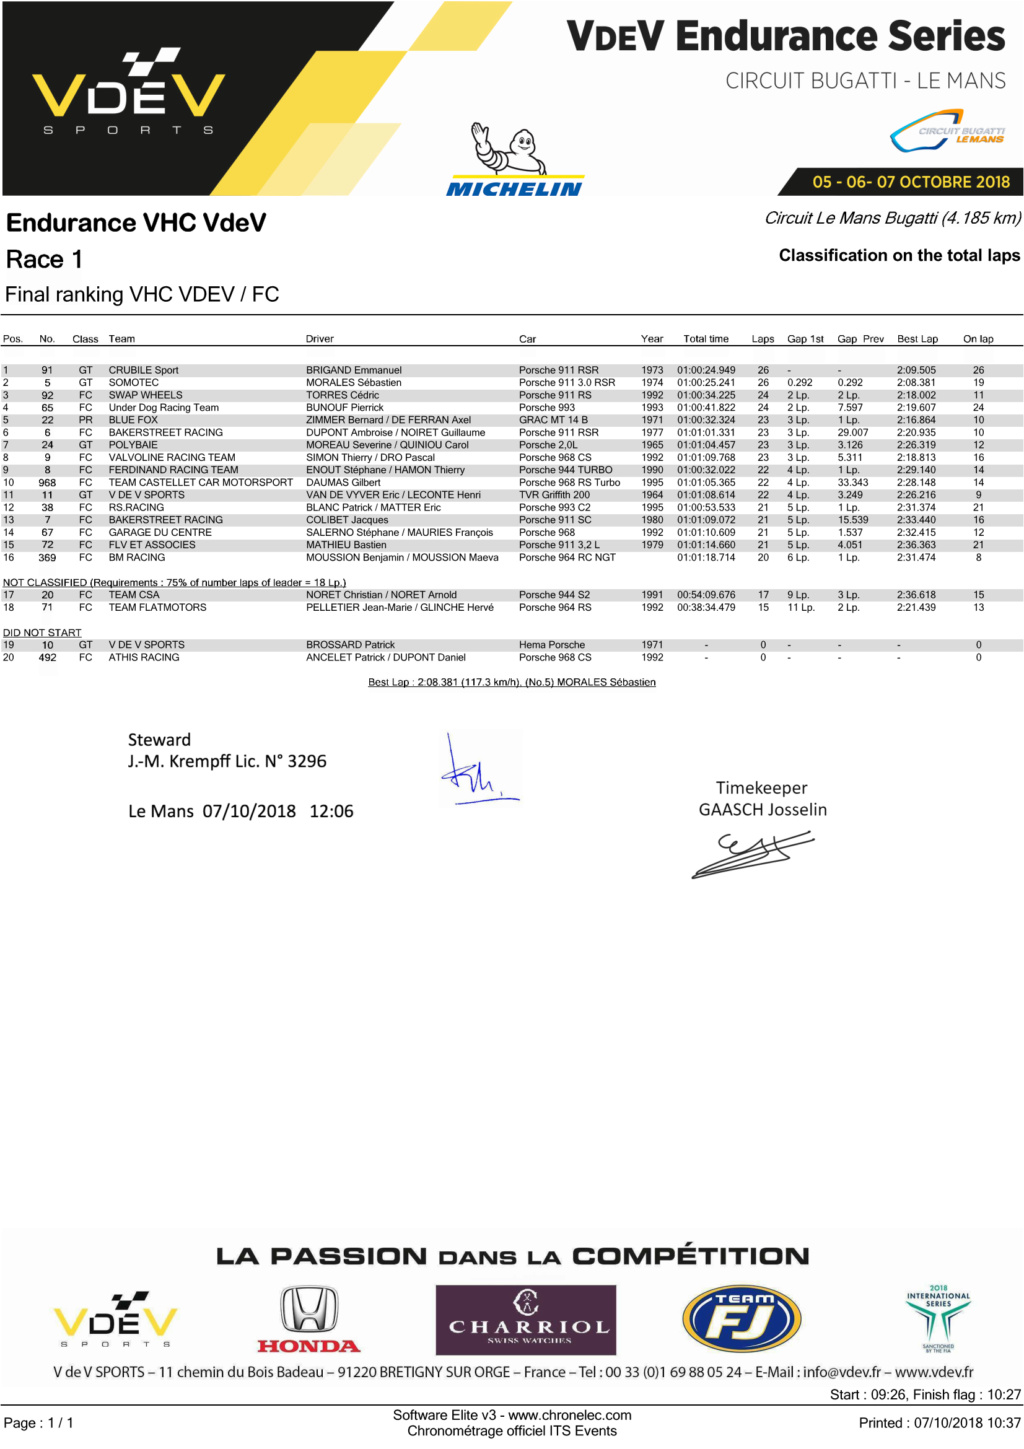 [968 TURBO] Une 968 turbo Rs replica pour courrir - Page 2 Course15